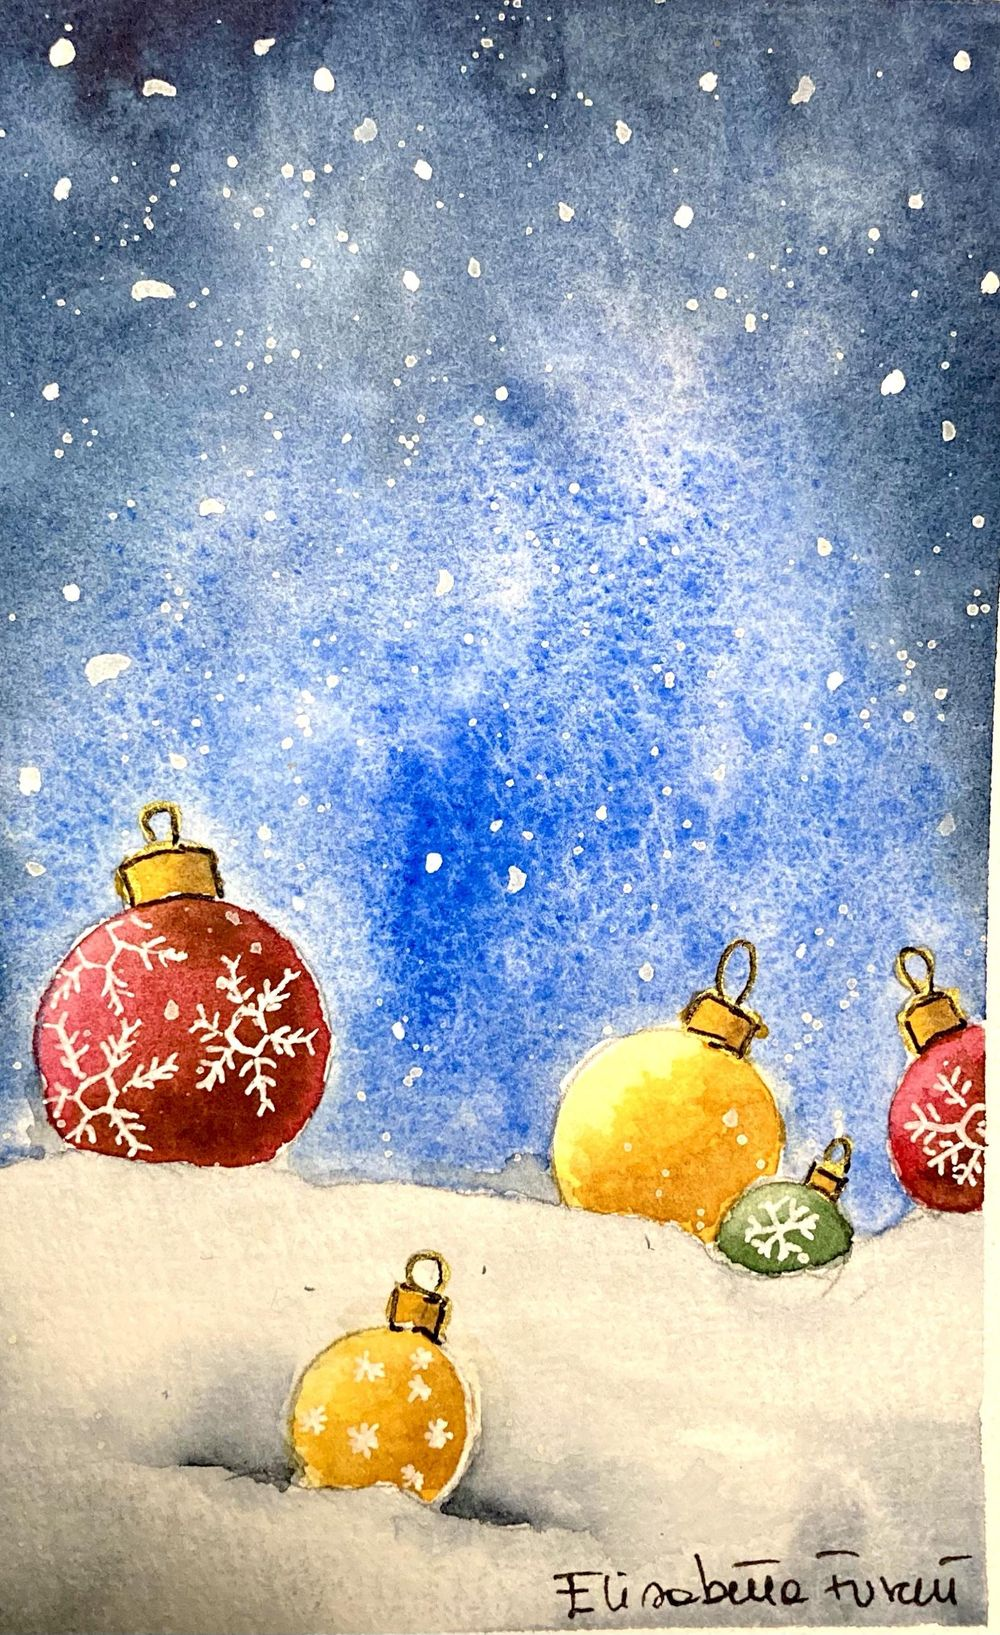 Christmas drawings - image 3 - student project